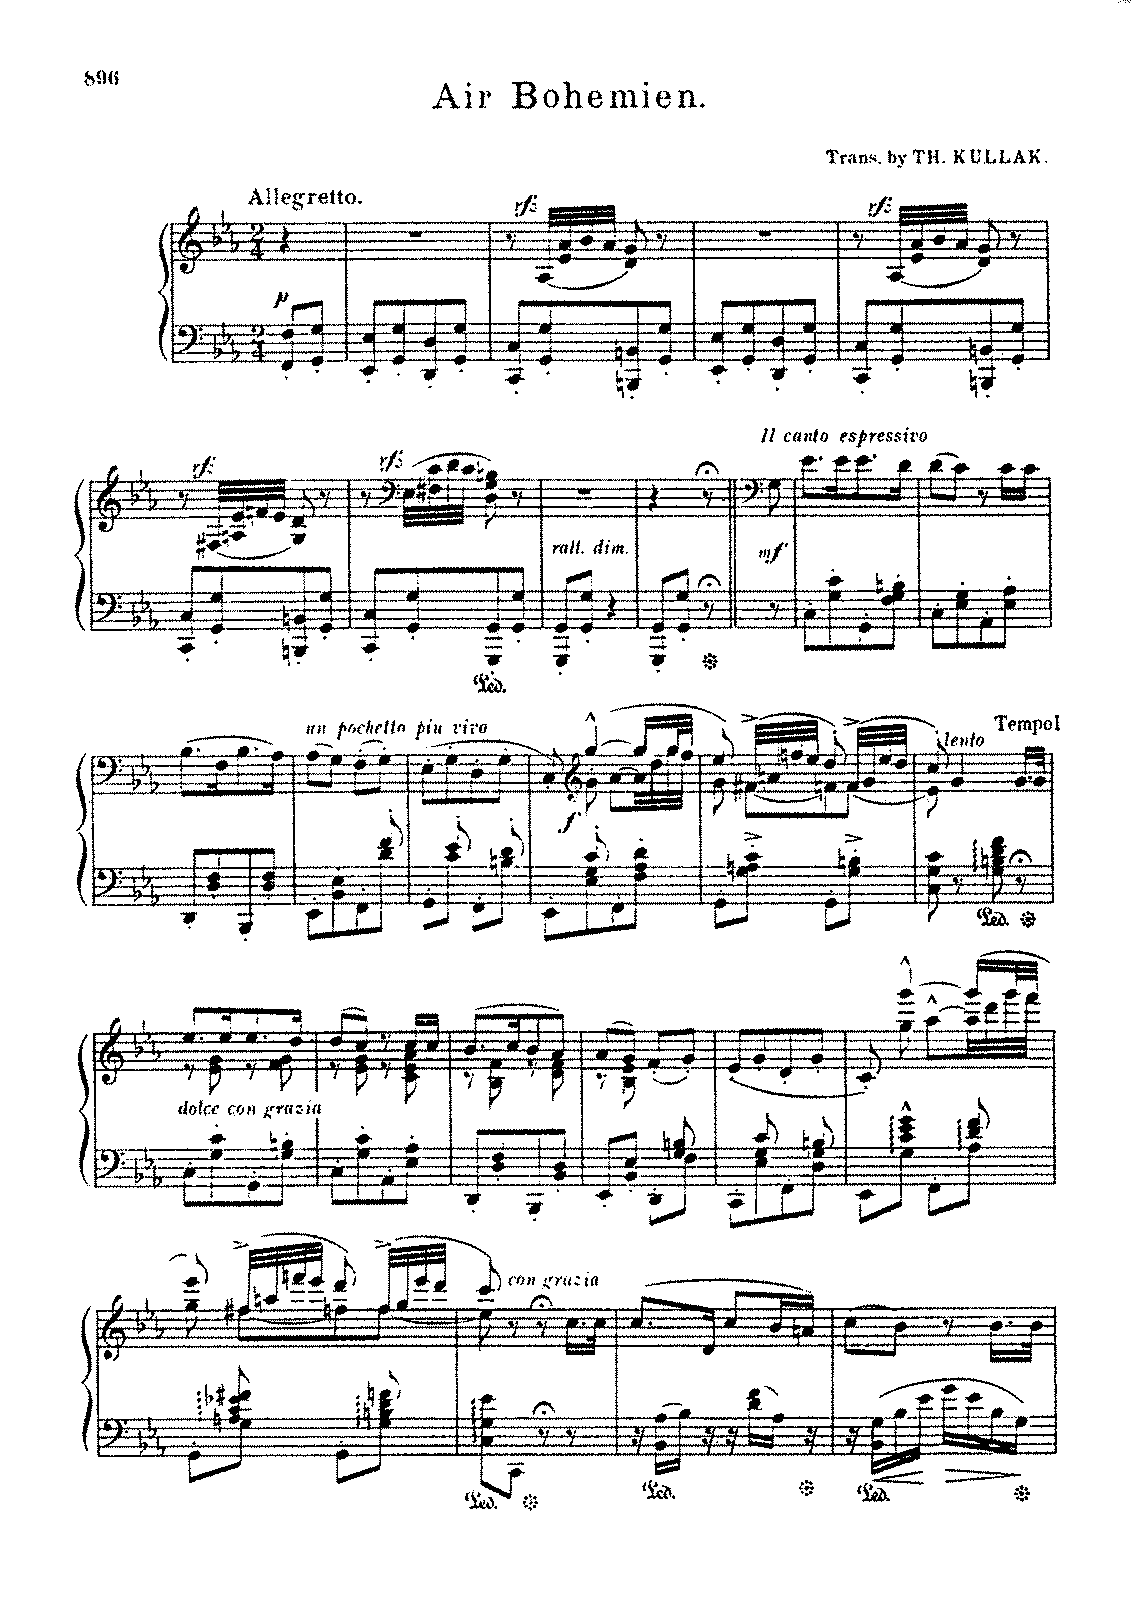 PMLP590048-Kullak - 56 Bouquet de 12 Mélodies Russes - Paraphrases Nouvelles Op.56 No.1 Air Bohemien in C minor.pdf